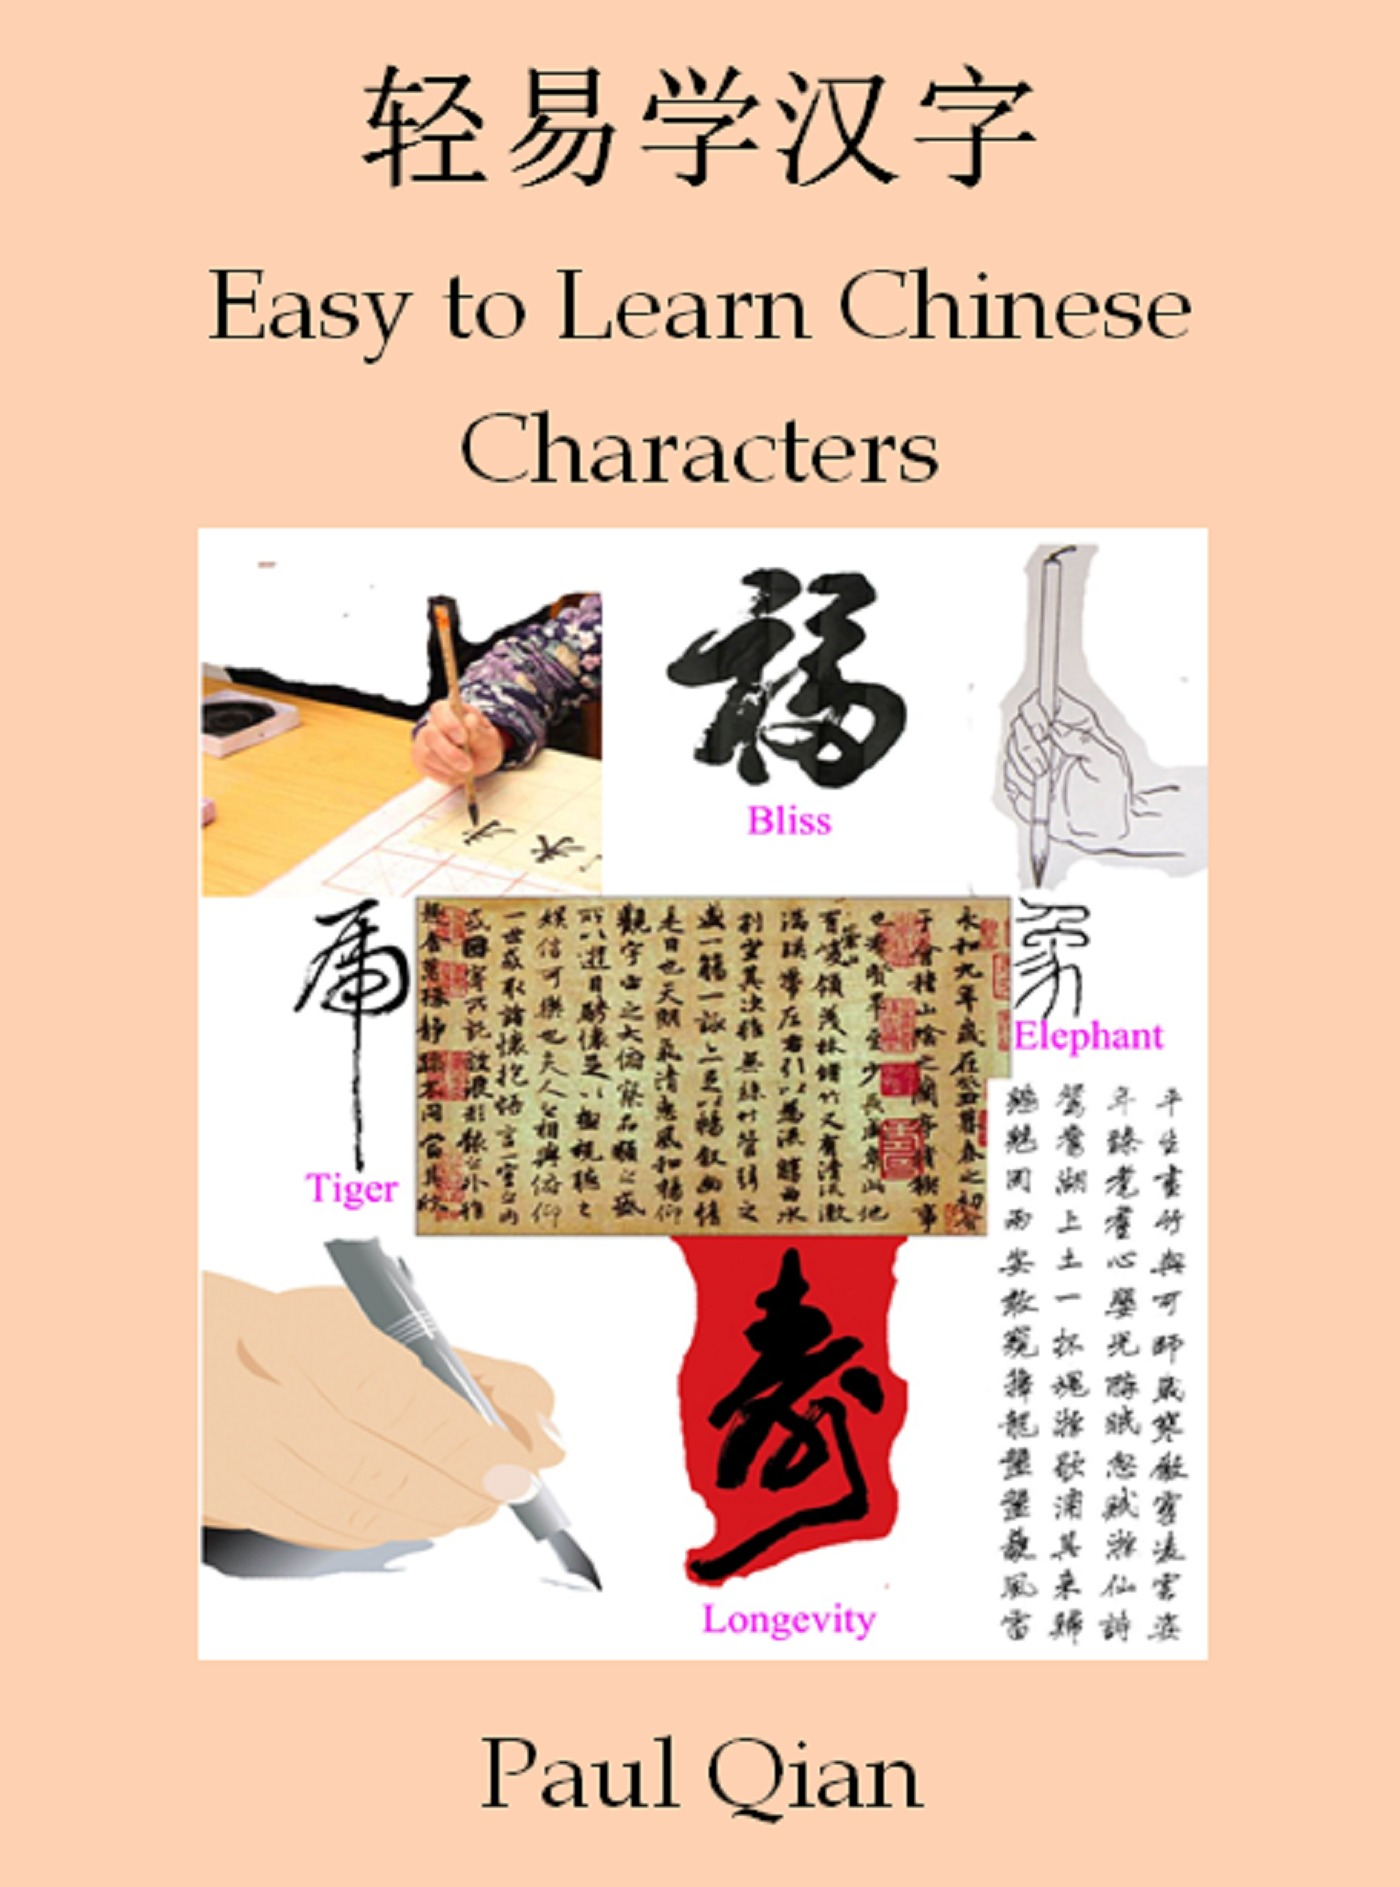 Easy to Learn Chinese Characters (轻易学汉字)